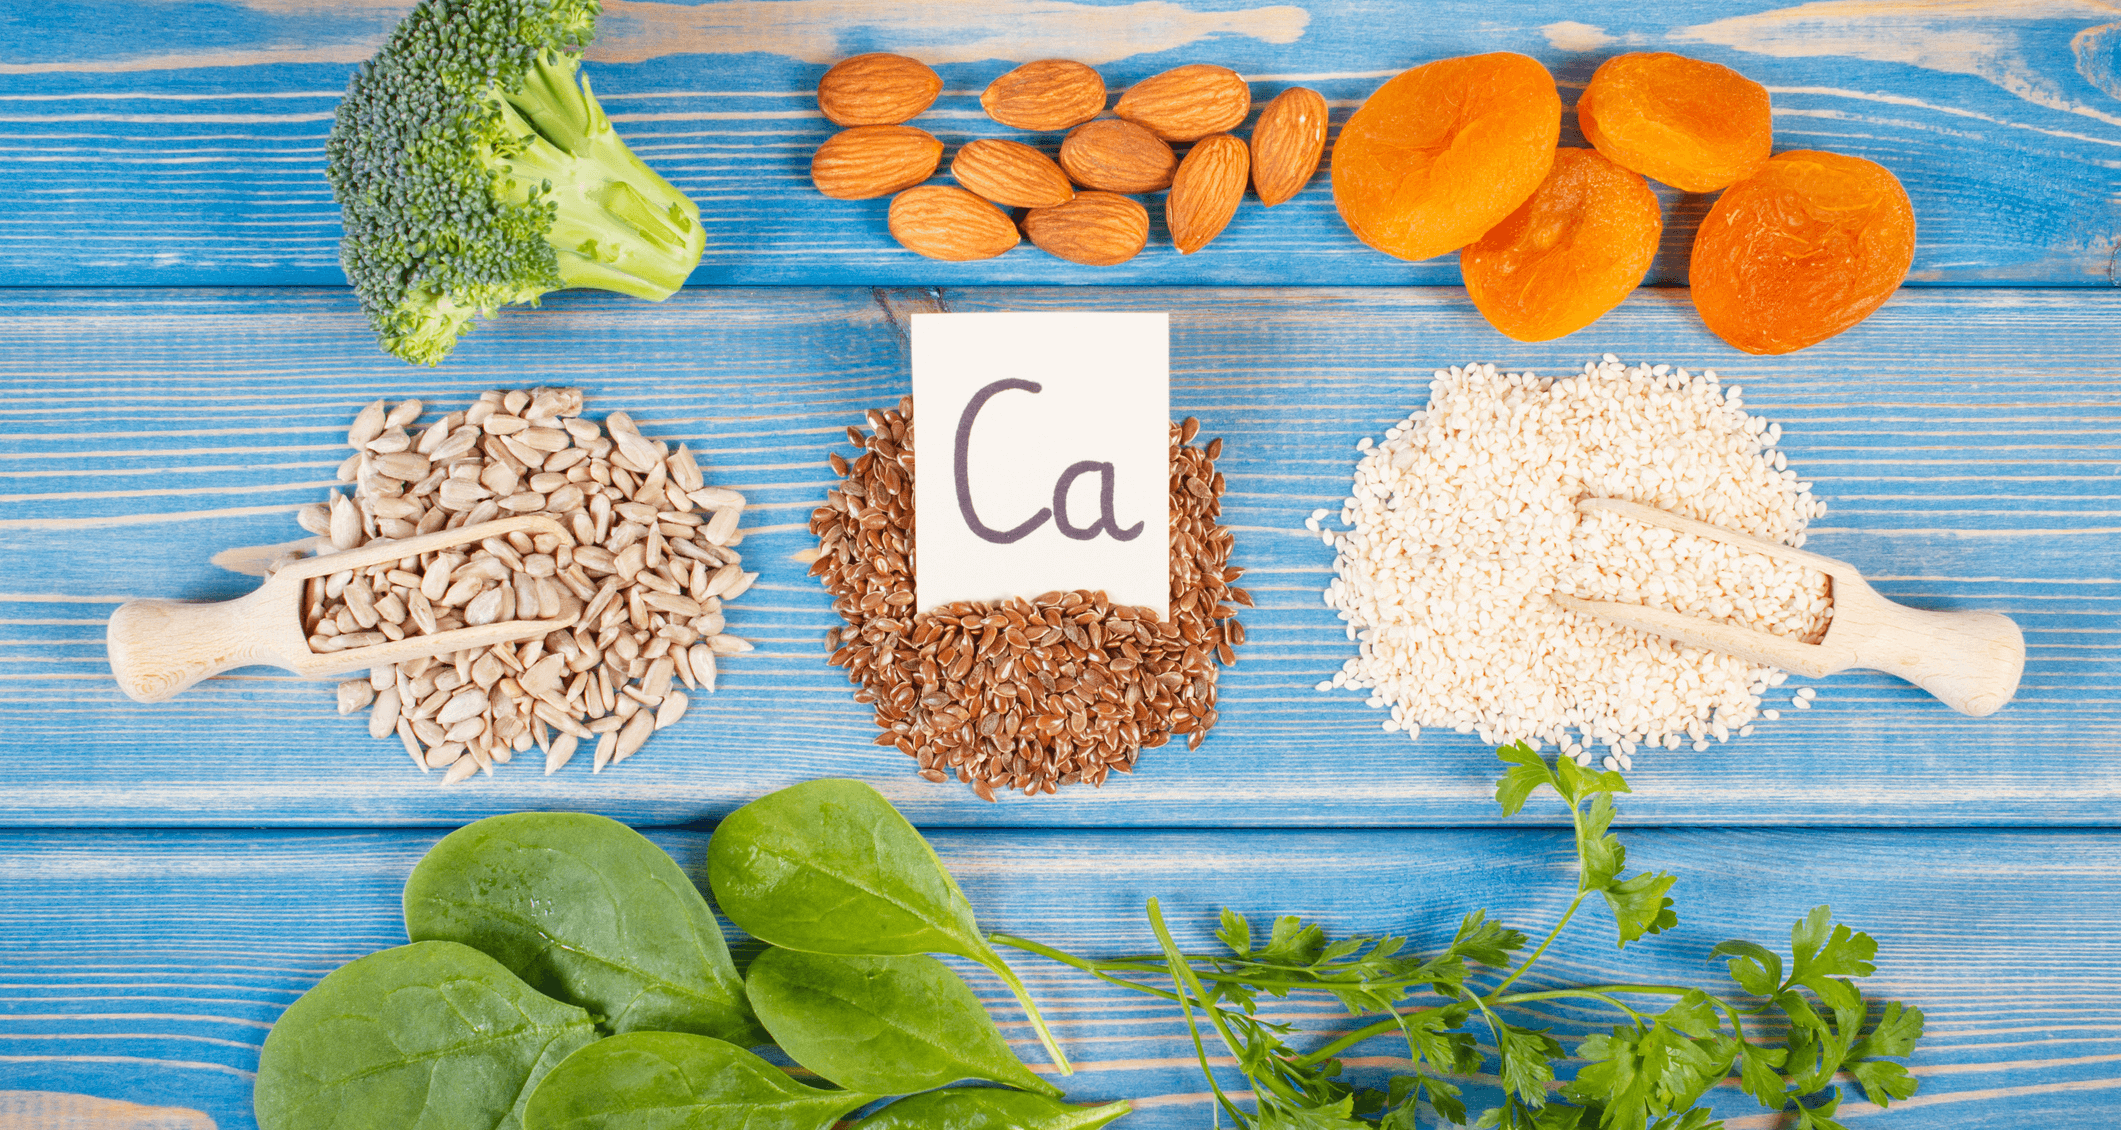 Calcium Rich Foods: 9 Healthy Sources That Aren't Milk